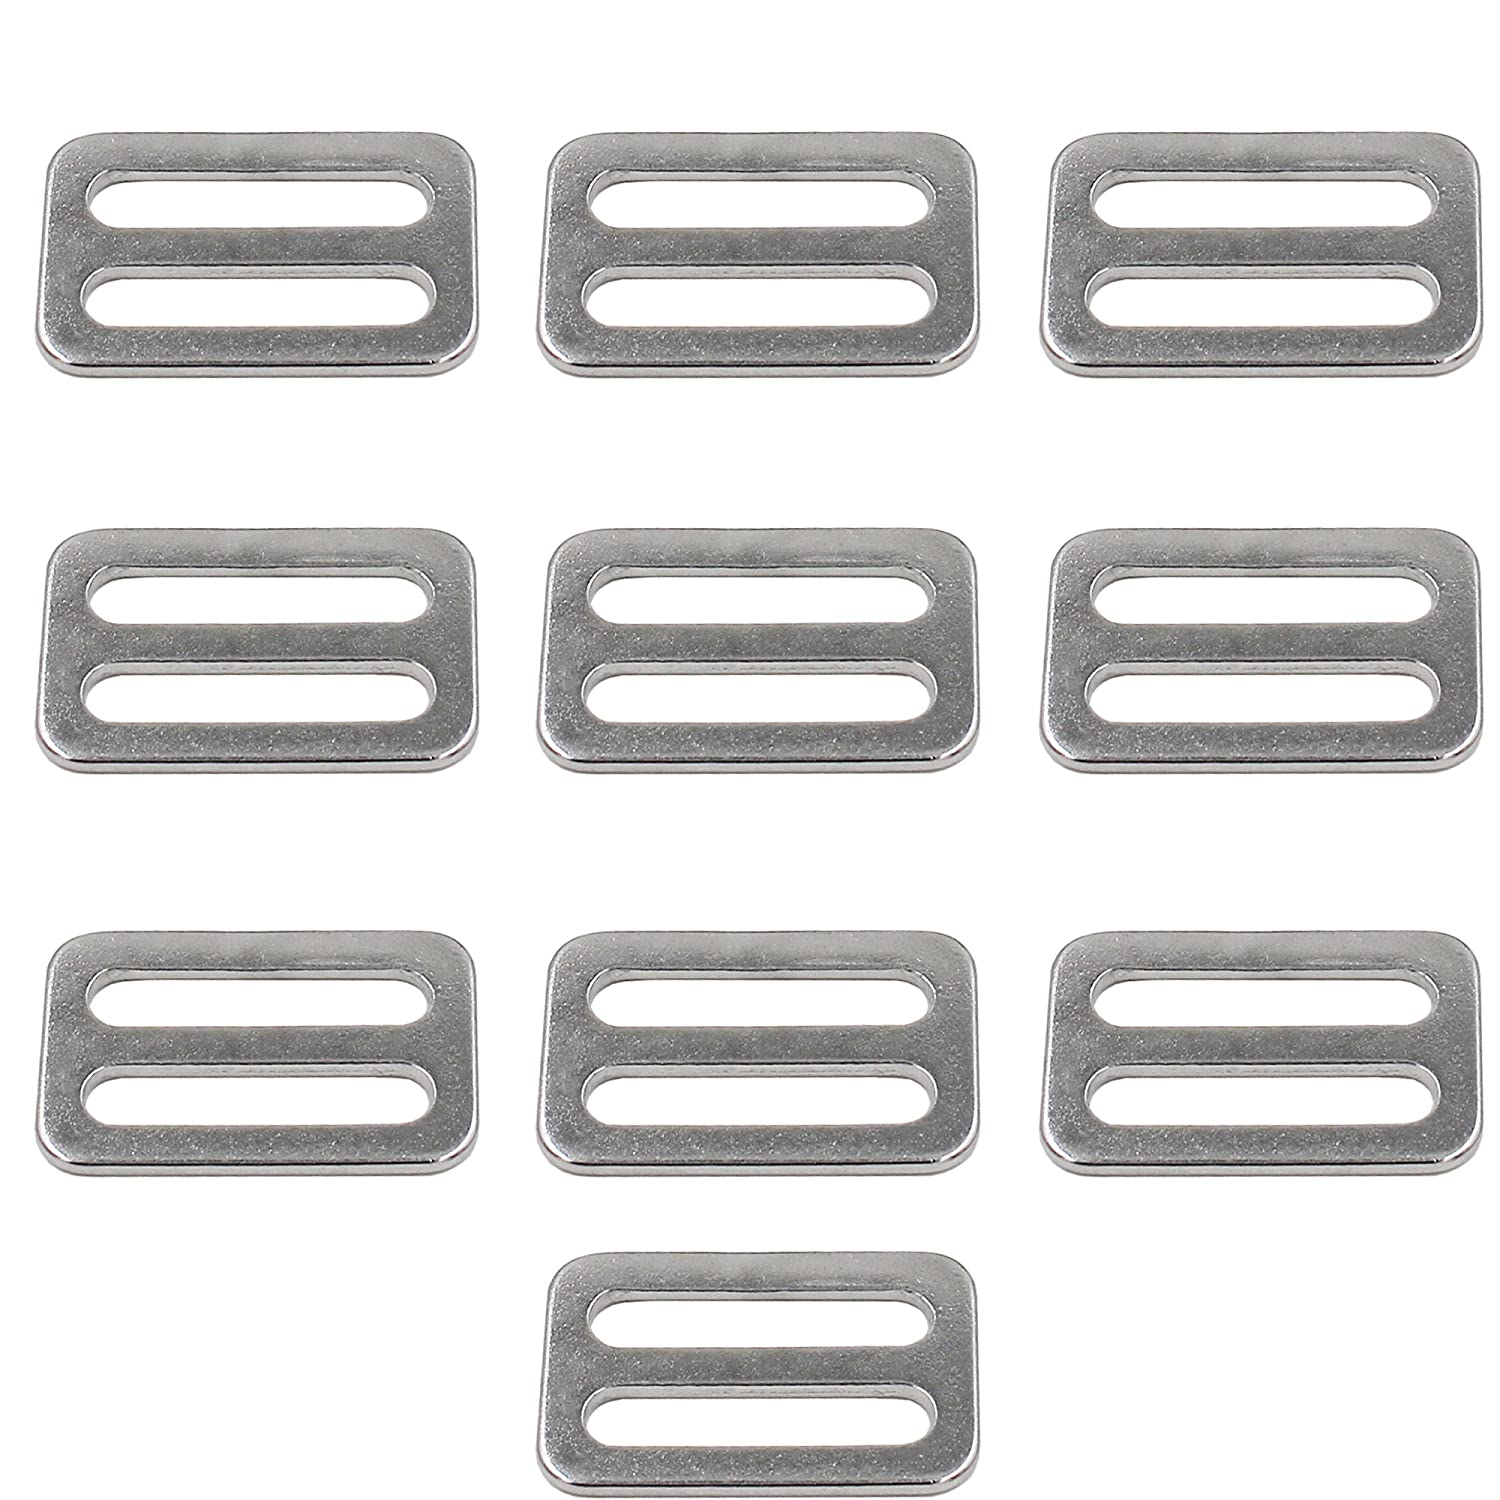 YYST 304 Stainless Steel Triglides Sliders for 1 Straps, 10/PK Yi Ya Su